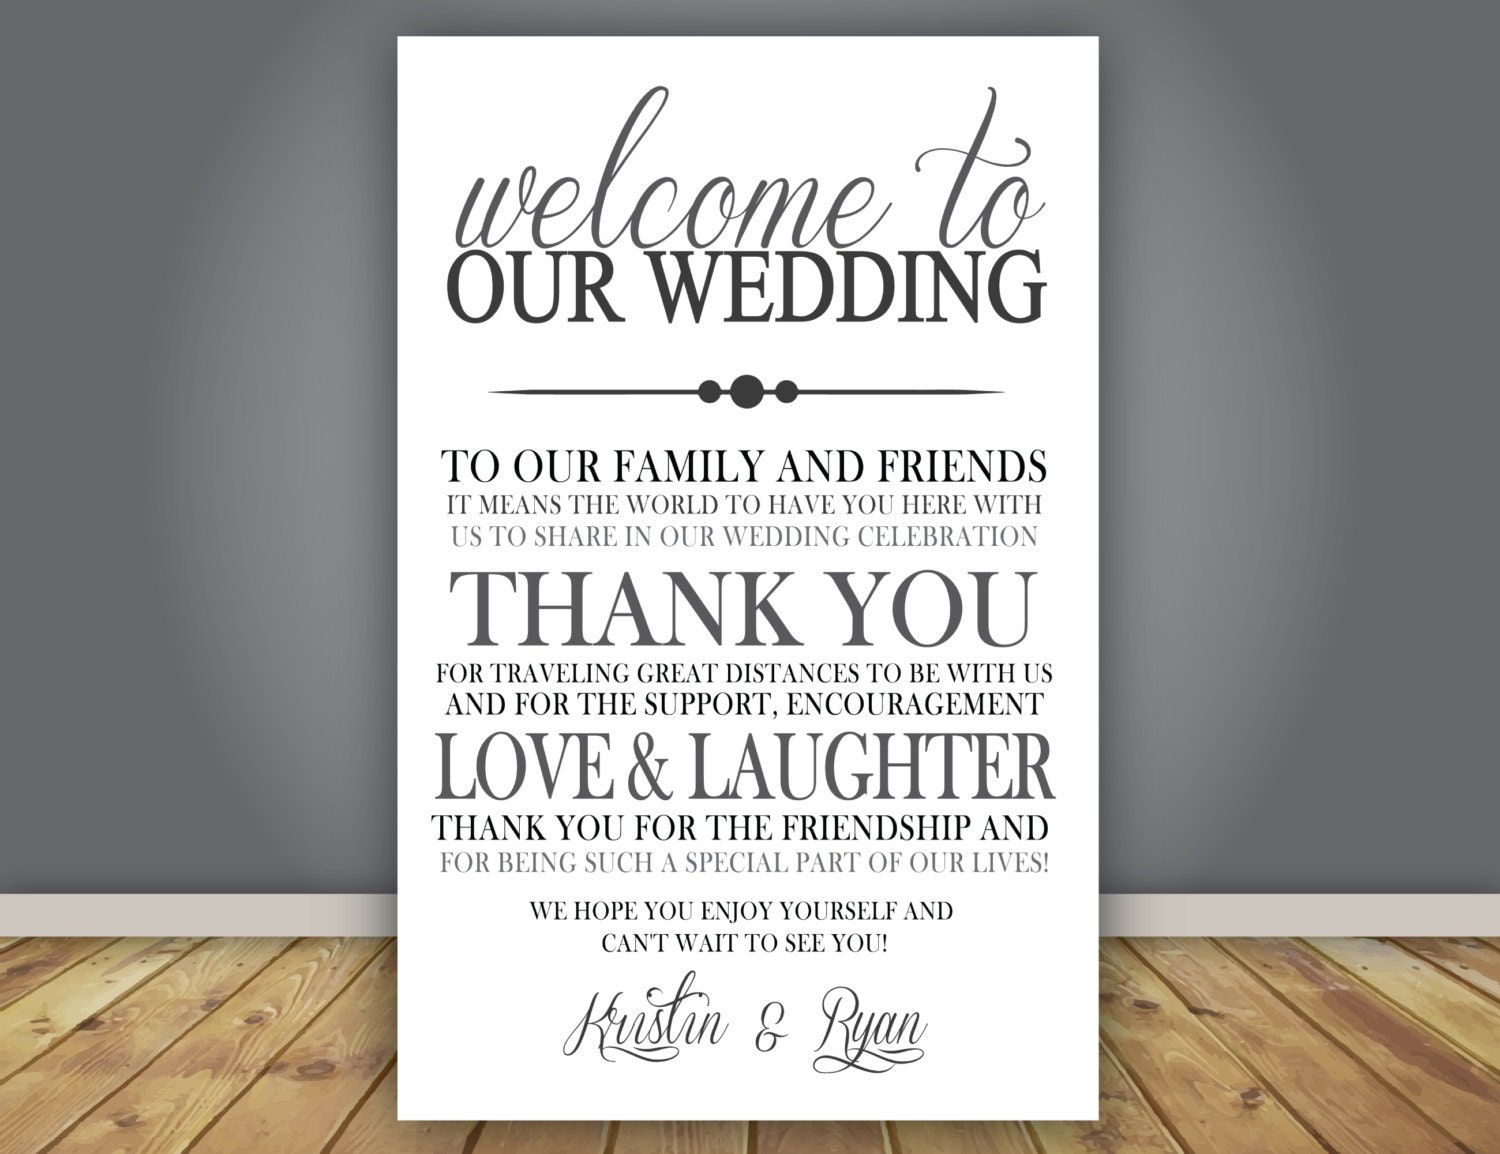 Thank You Wording For Wedding Gift: ADD-ON Thank You Note Wedding Program Add On Guest Thank